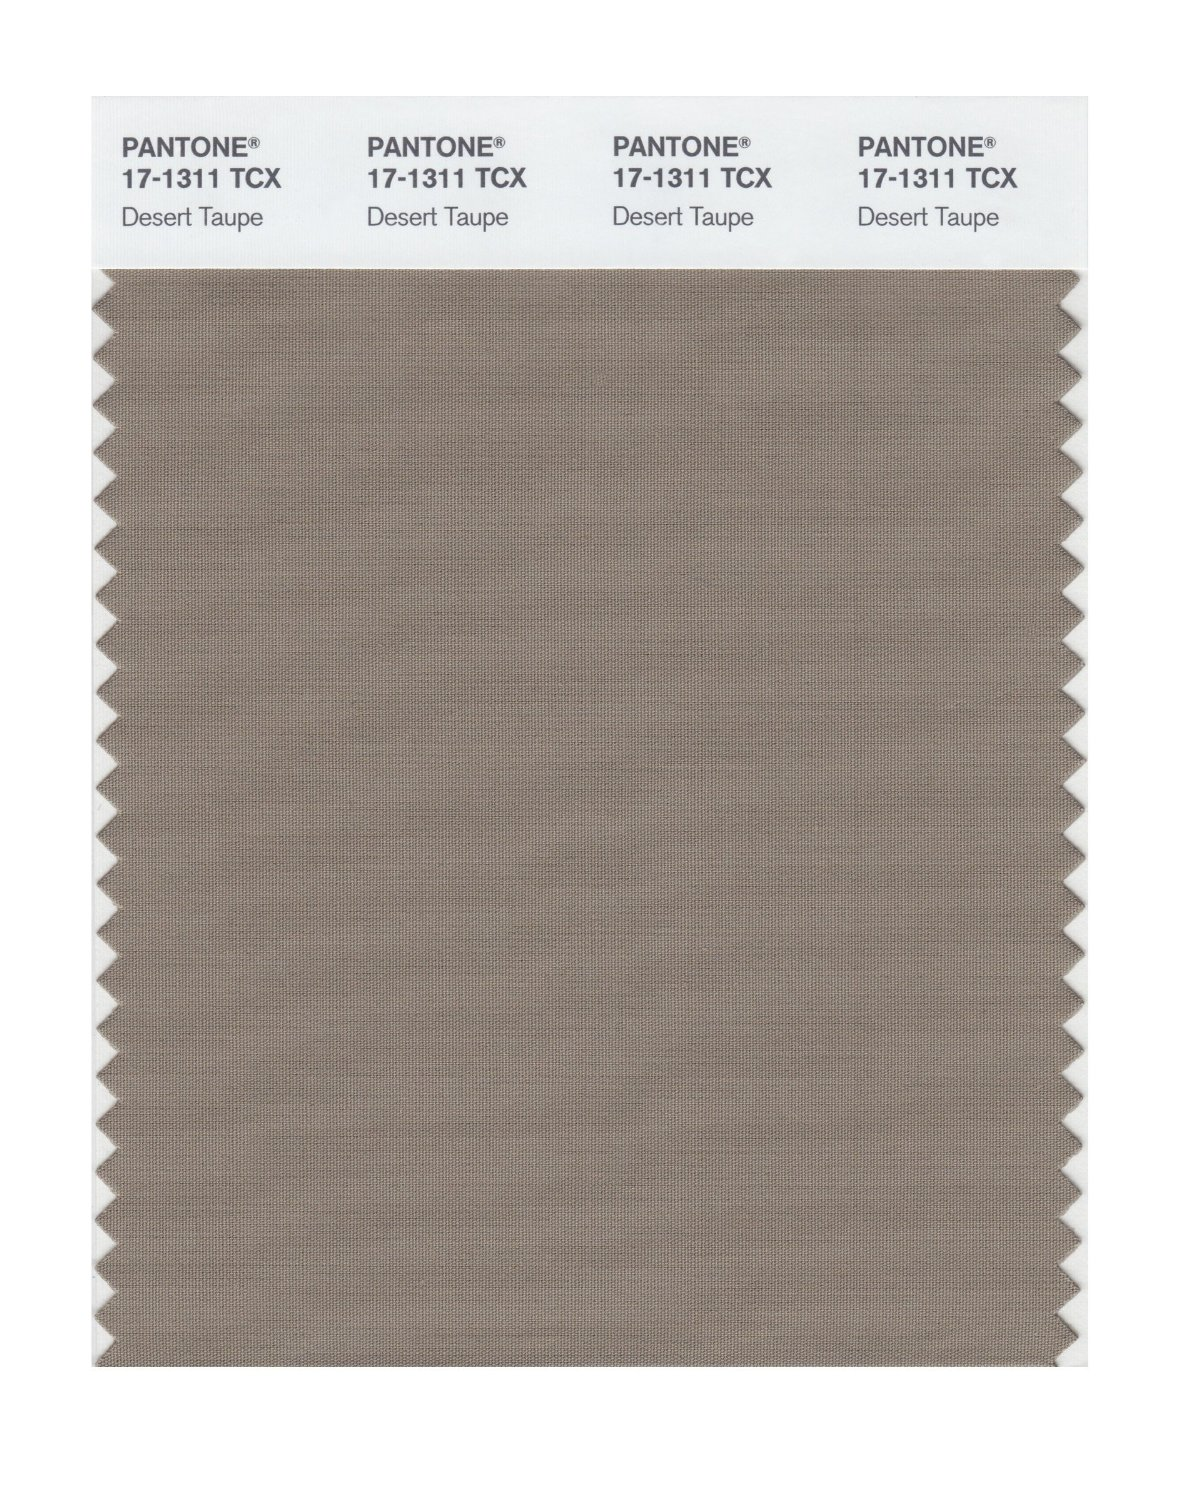 Pantone Smart Swatch 17-1311 Desert Taupe